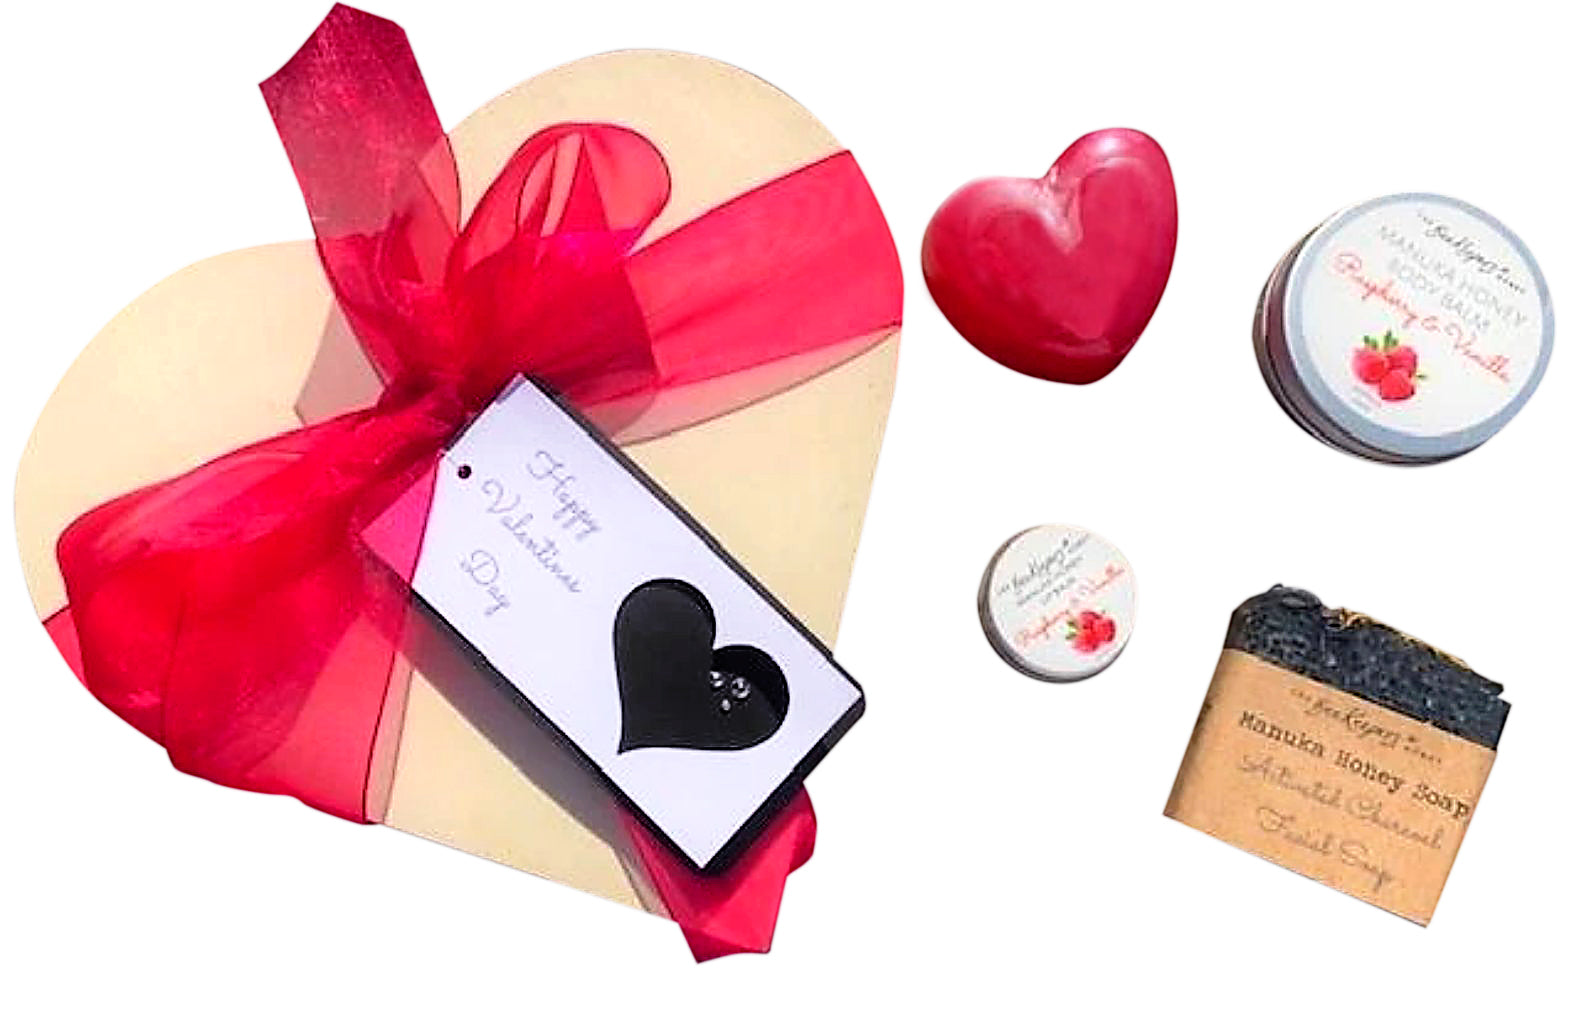 Heart Gift Box - Gift Baskets | The BeeKeepers Honey